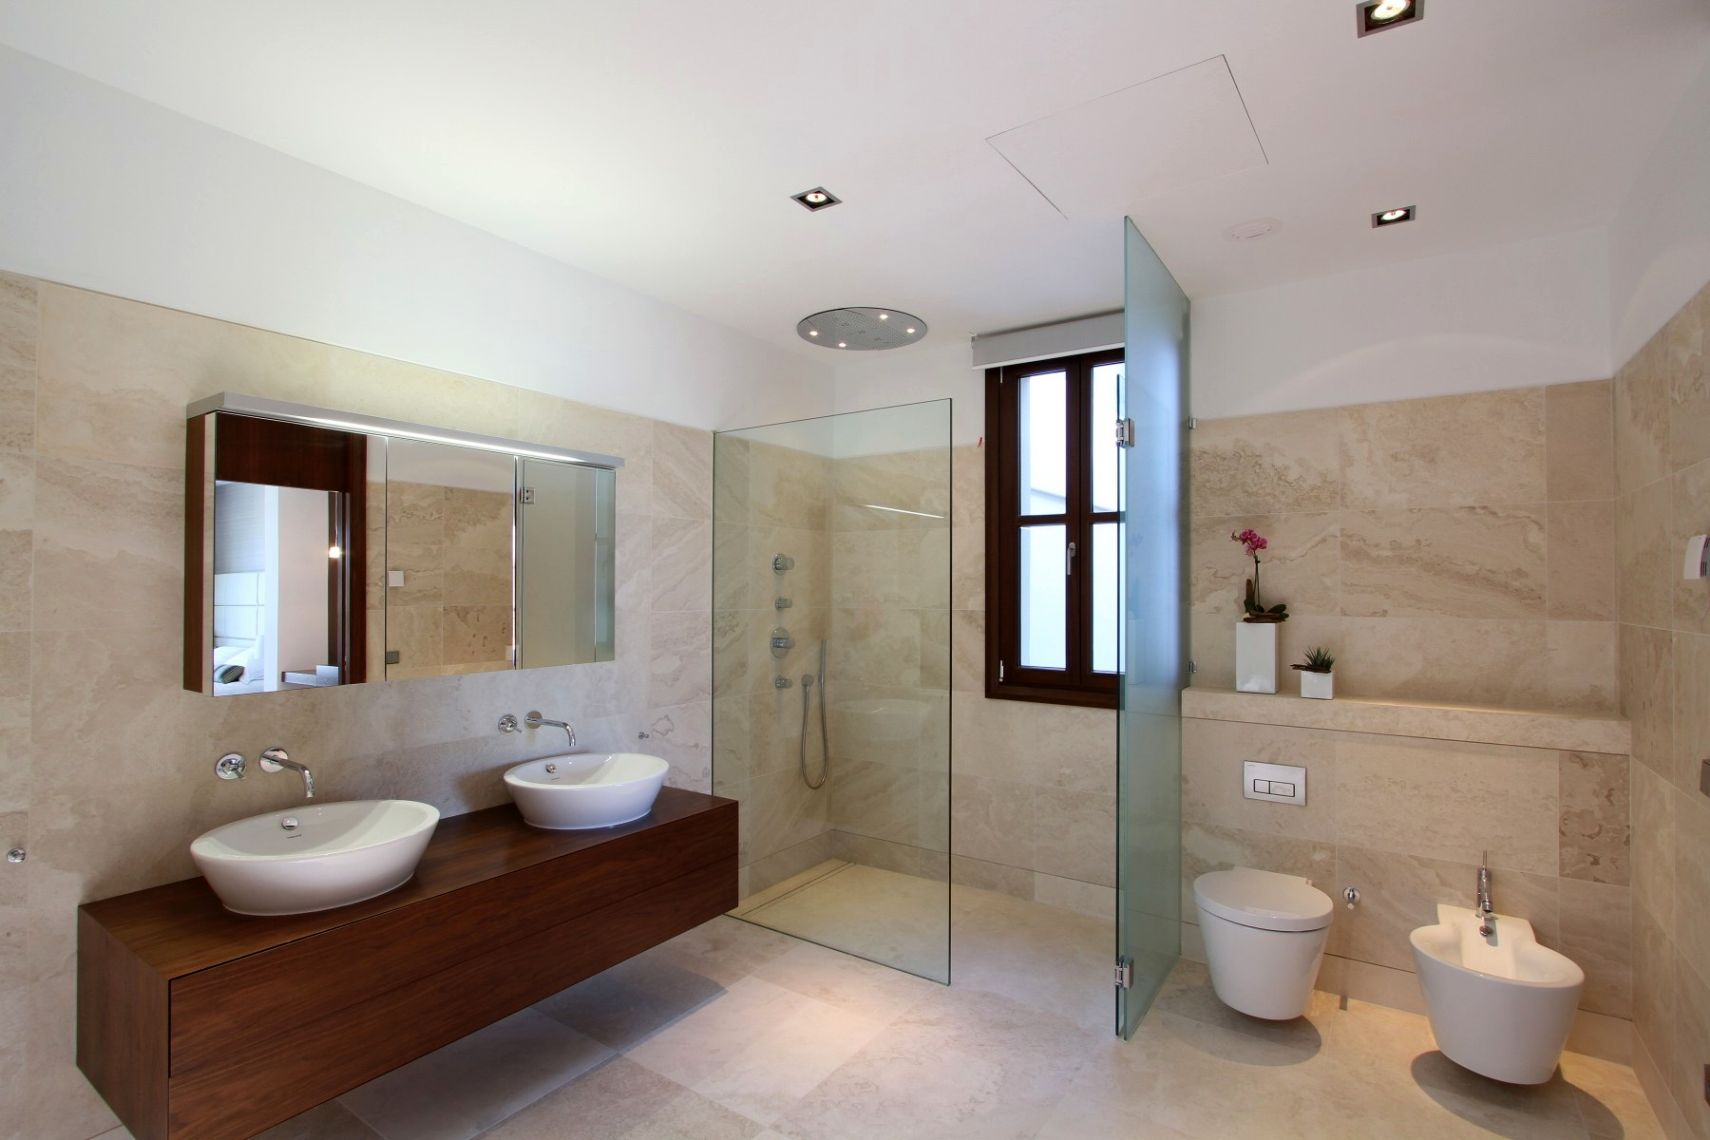 15 unbelievable modern bathroom interior designs for Bathroom interior design pictures